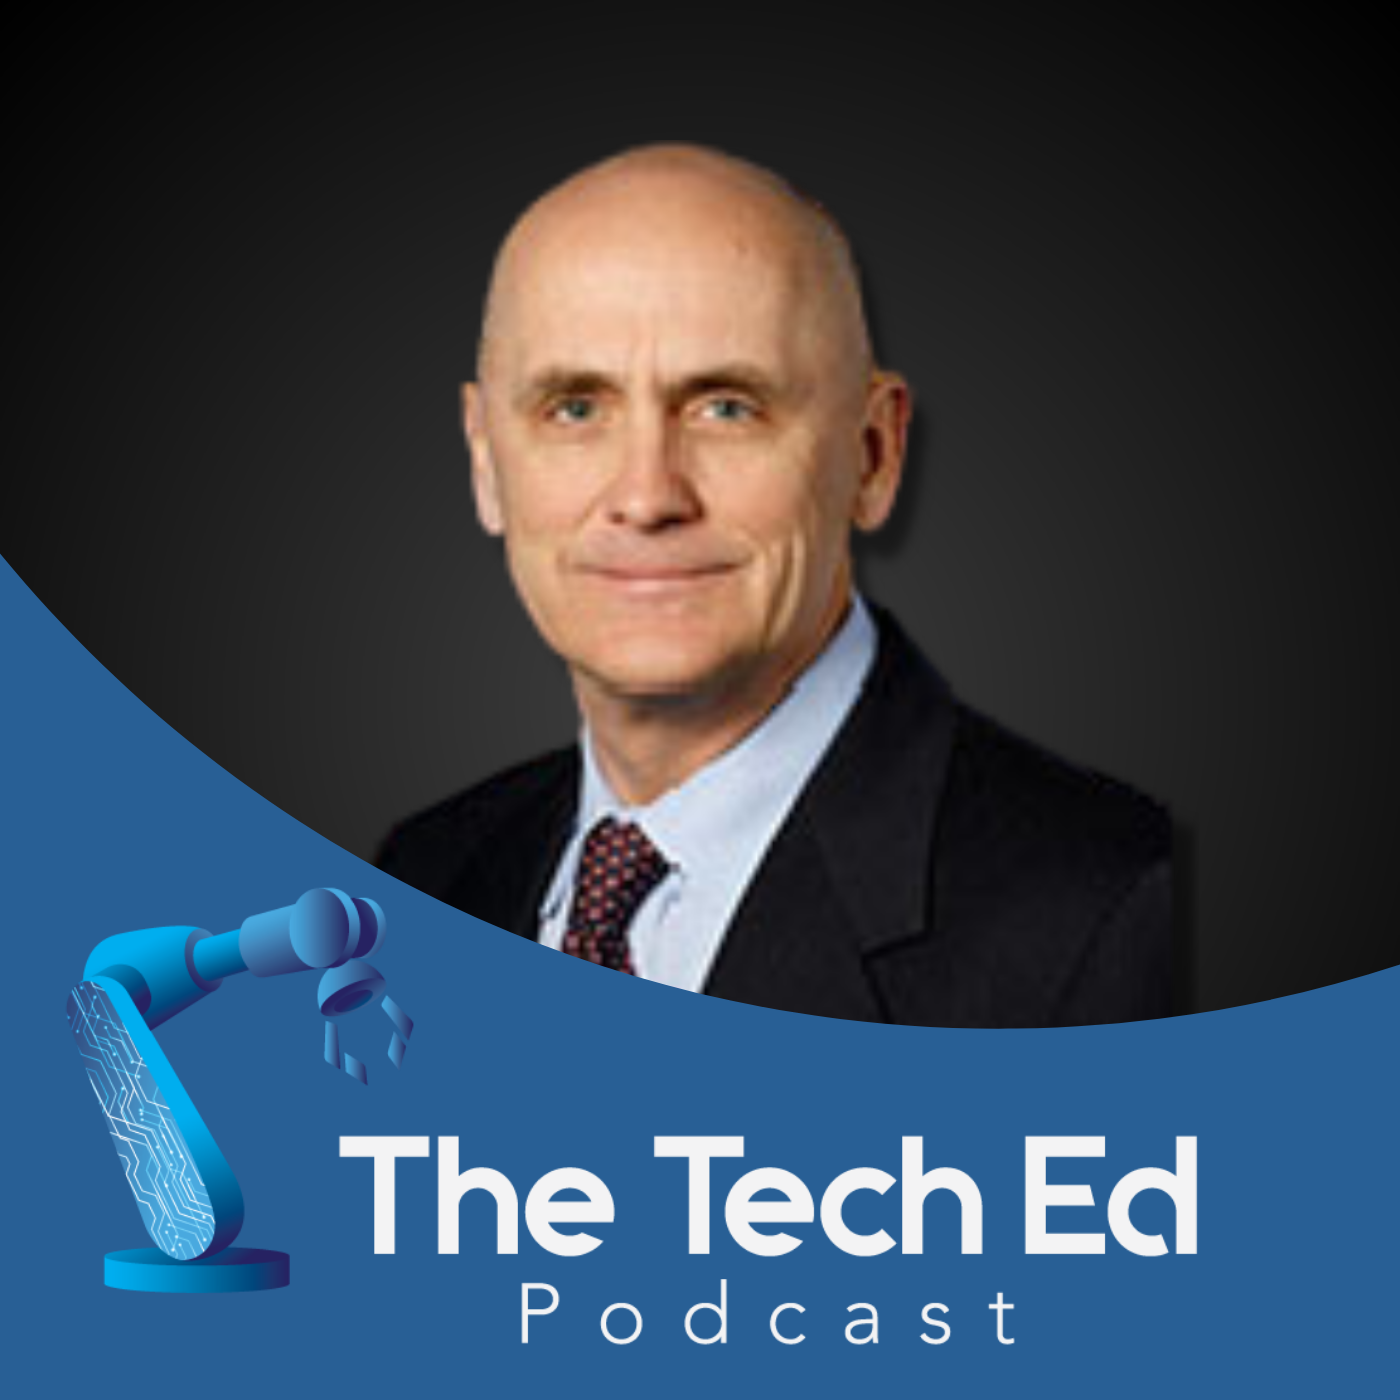 John Lowry on The TechEd Podcast